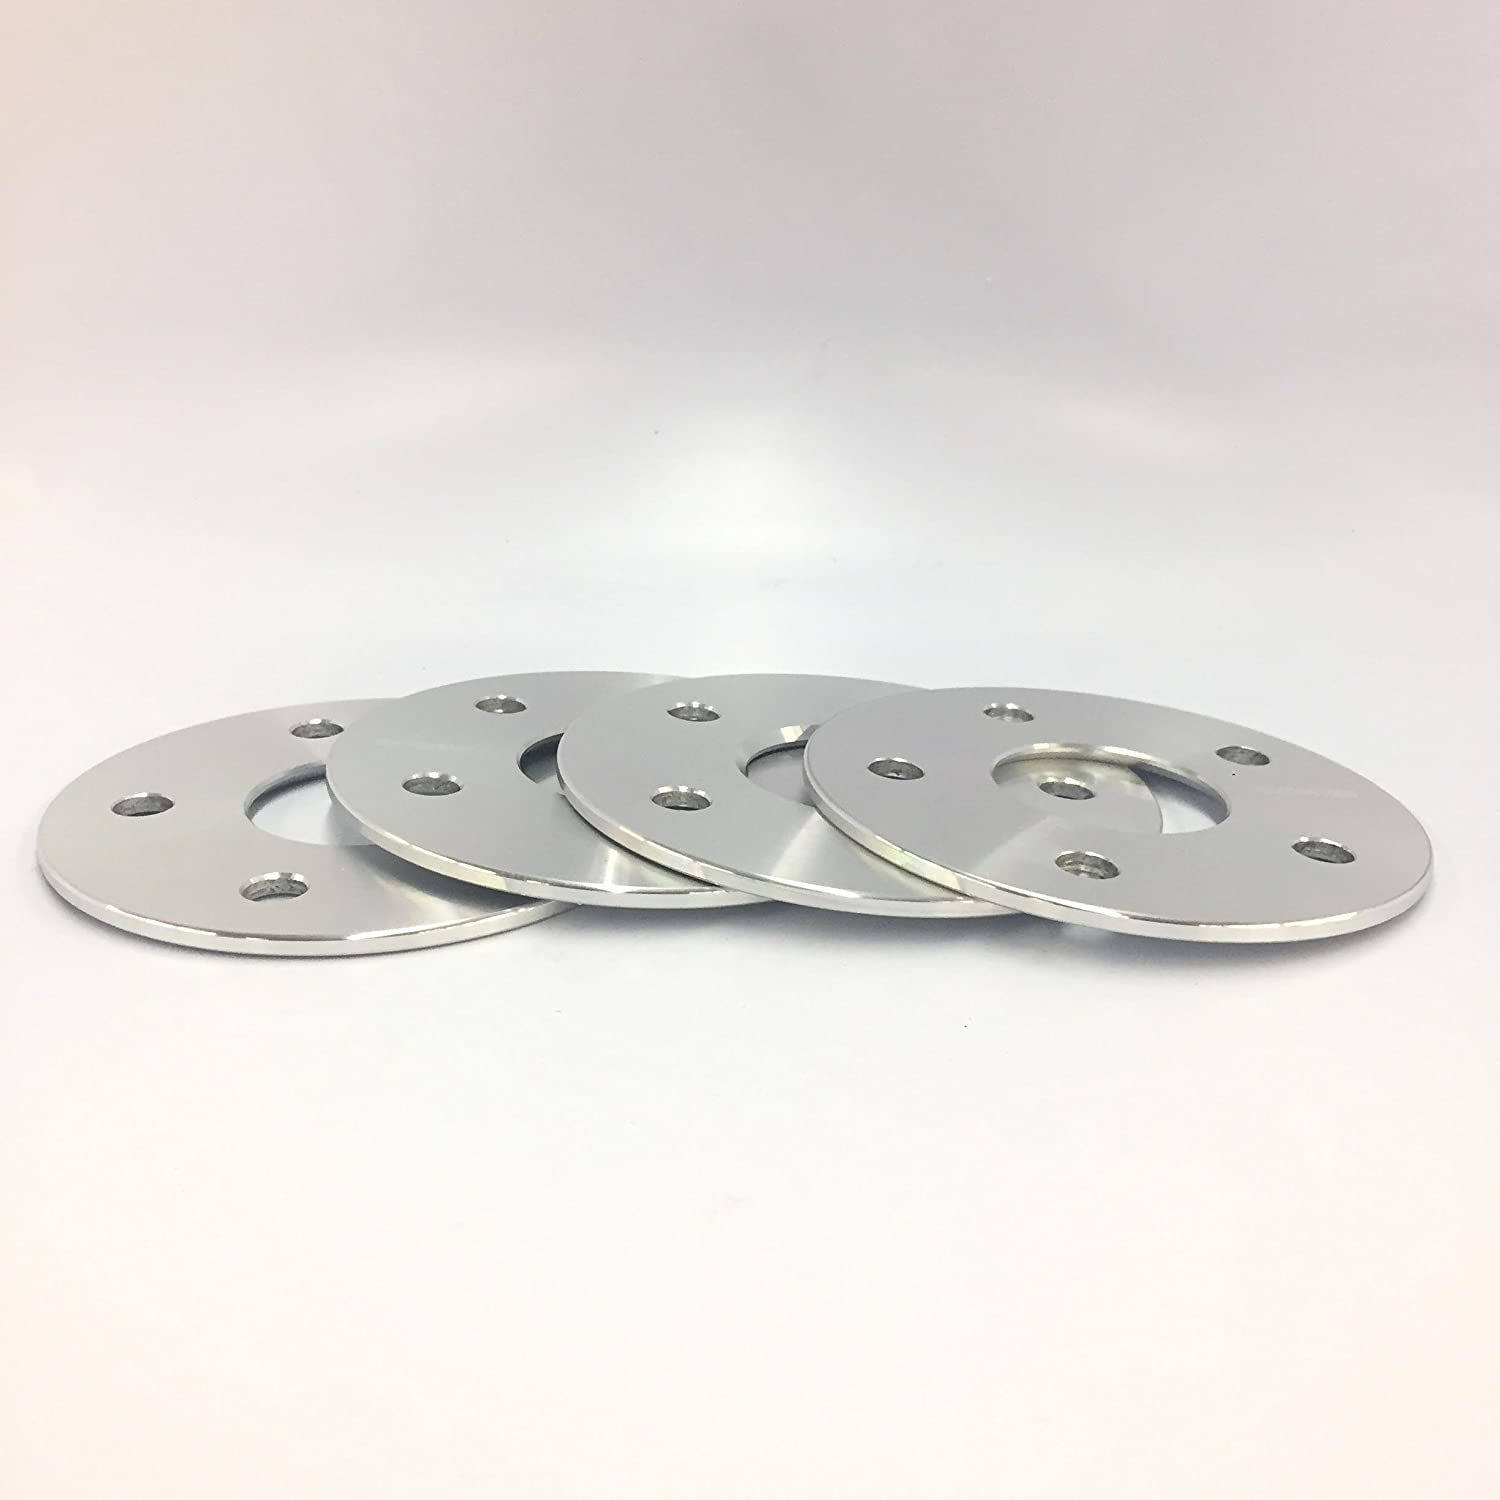 4 Pieces 3//16 5mm Hub Centric Wheel Spacers Adapters Bolt Pattern 5x115 Thread Pitch 14x1.5 Center Bore 71.5mm Fits Dodge